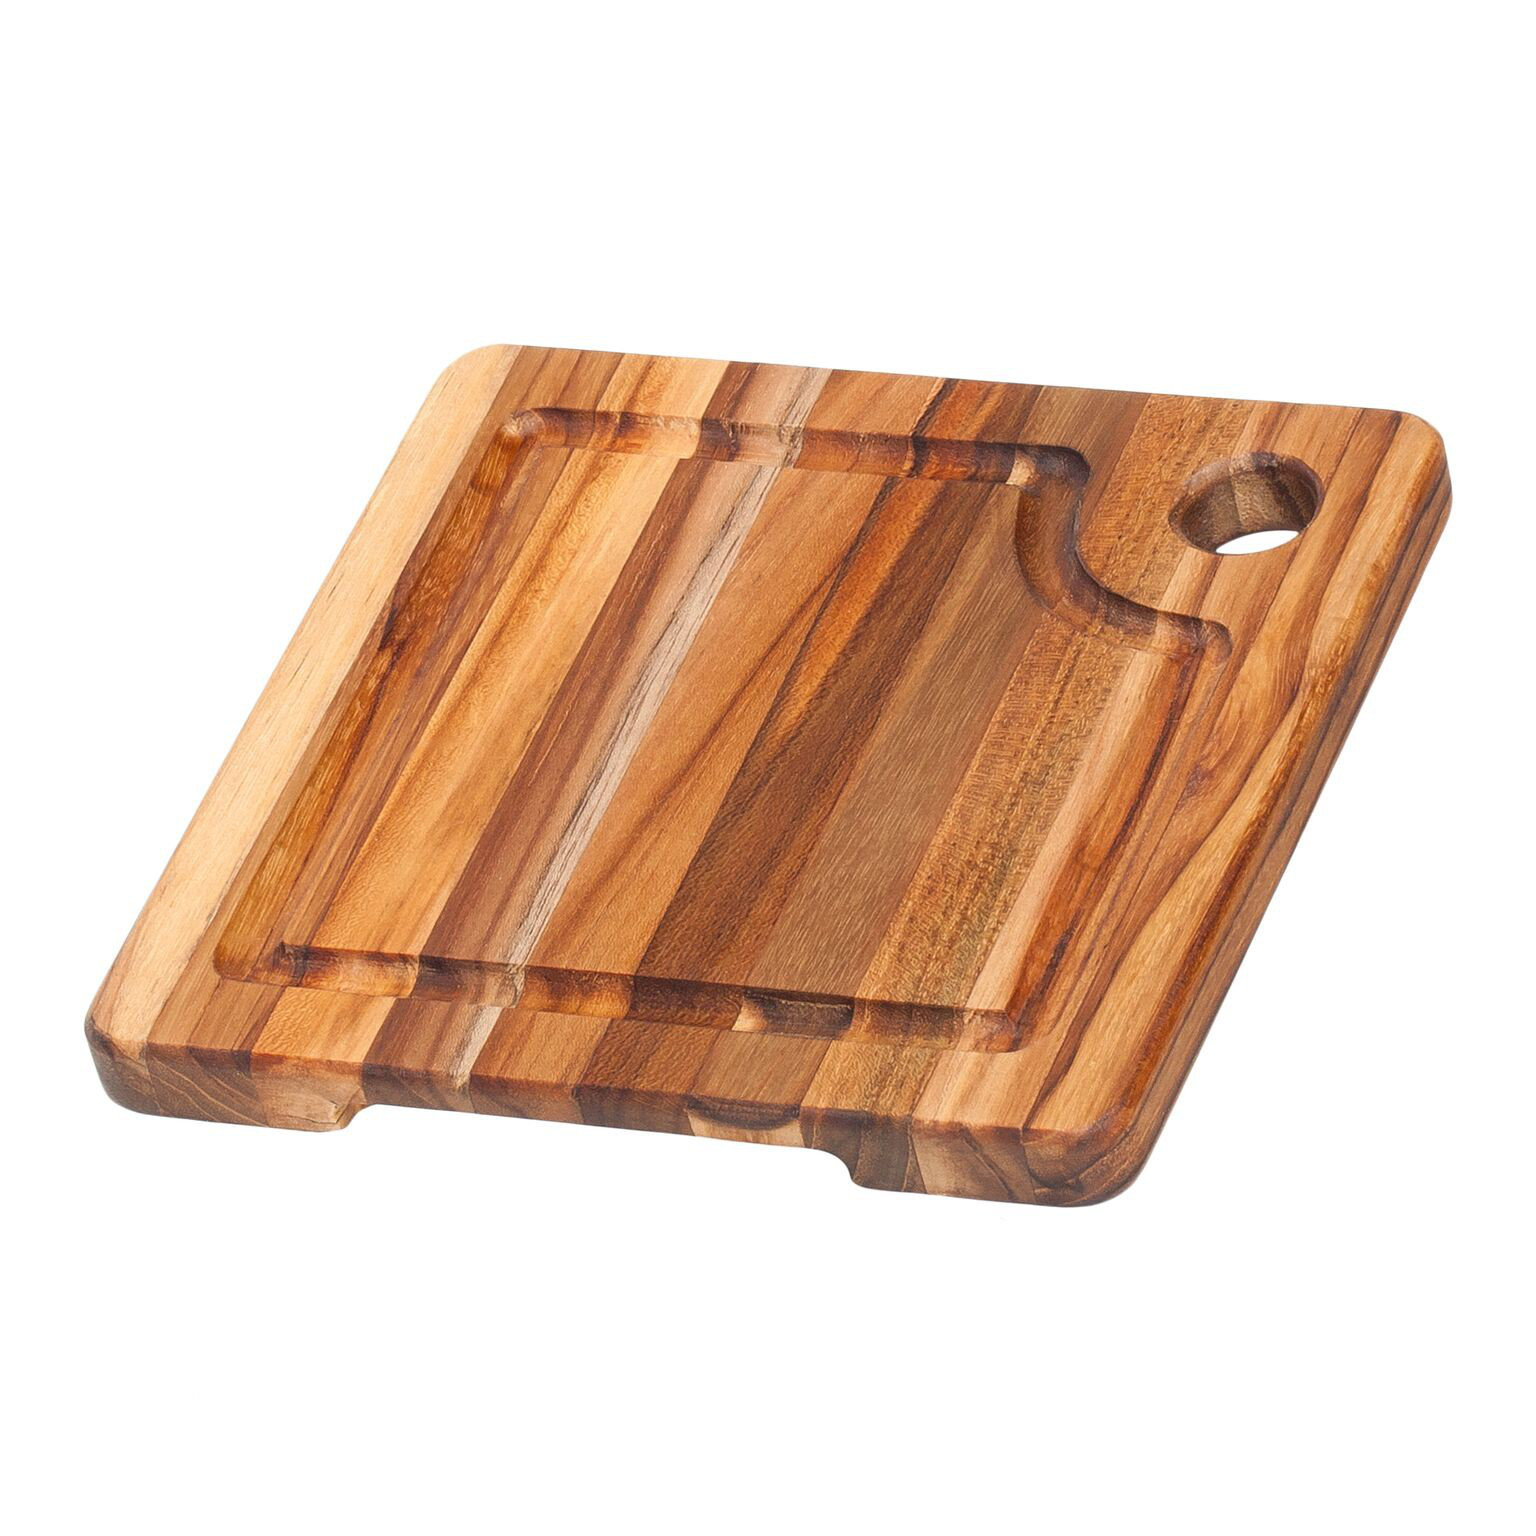 Teak Haus Edge Grain Marine Collection Boards 513 Corner Hole & Juice Groove 20x20x1,9